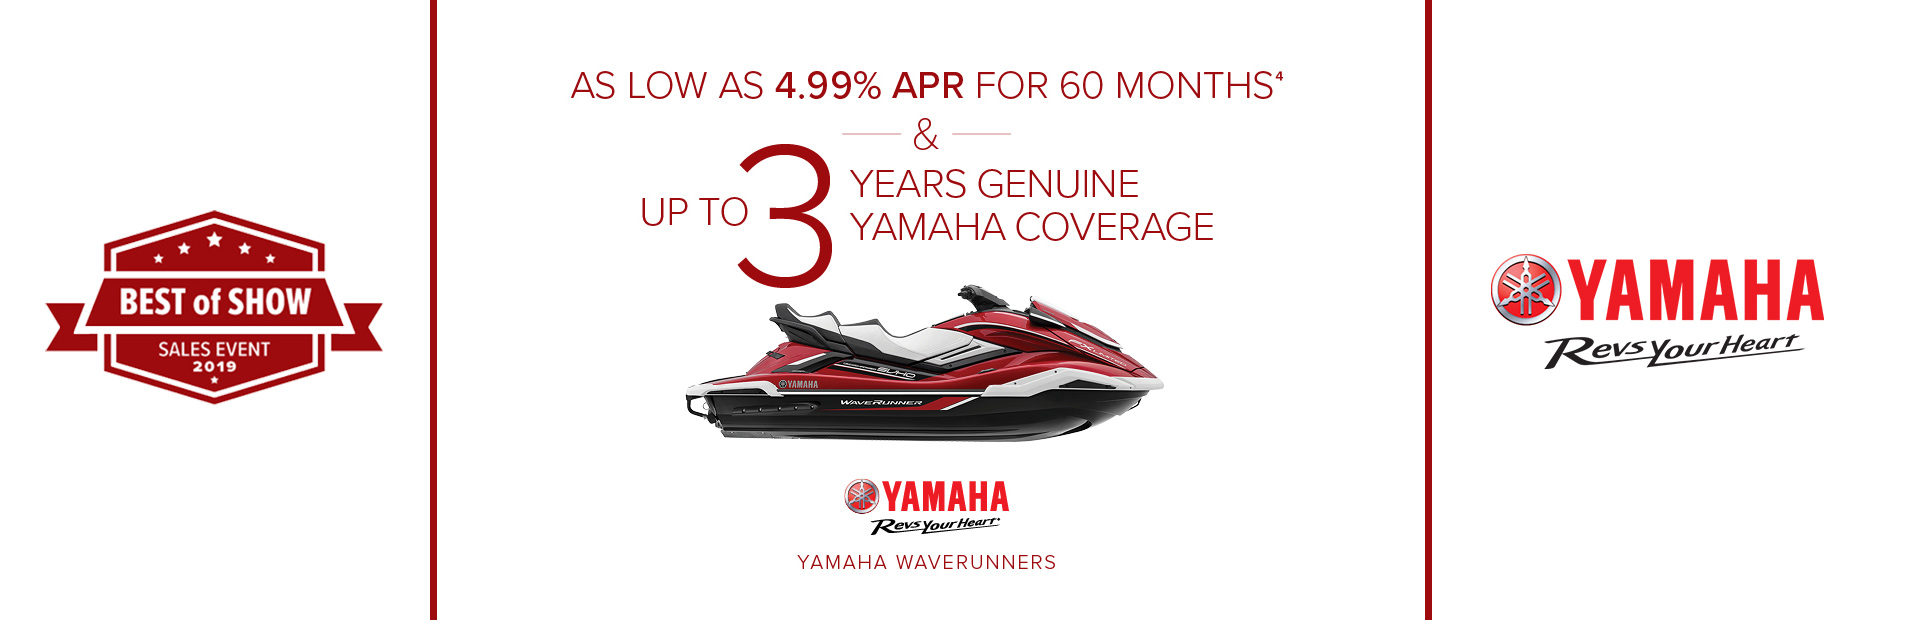 Yamaha: Best of Show - As Low As 4.99% APR For 60 Months